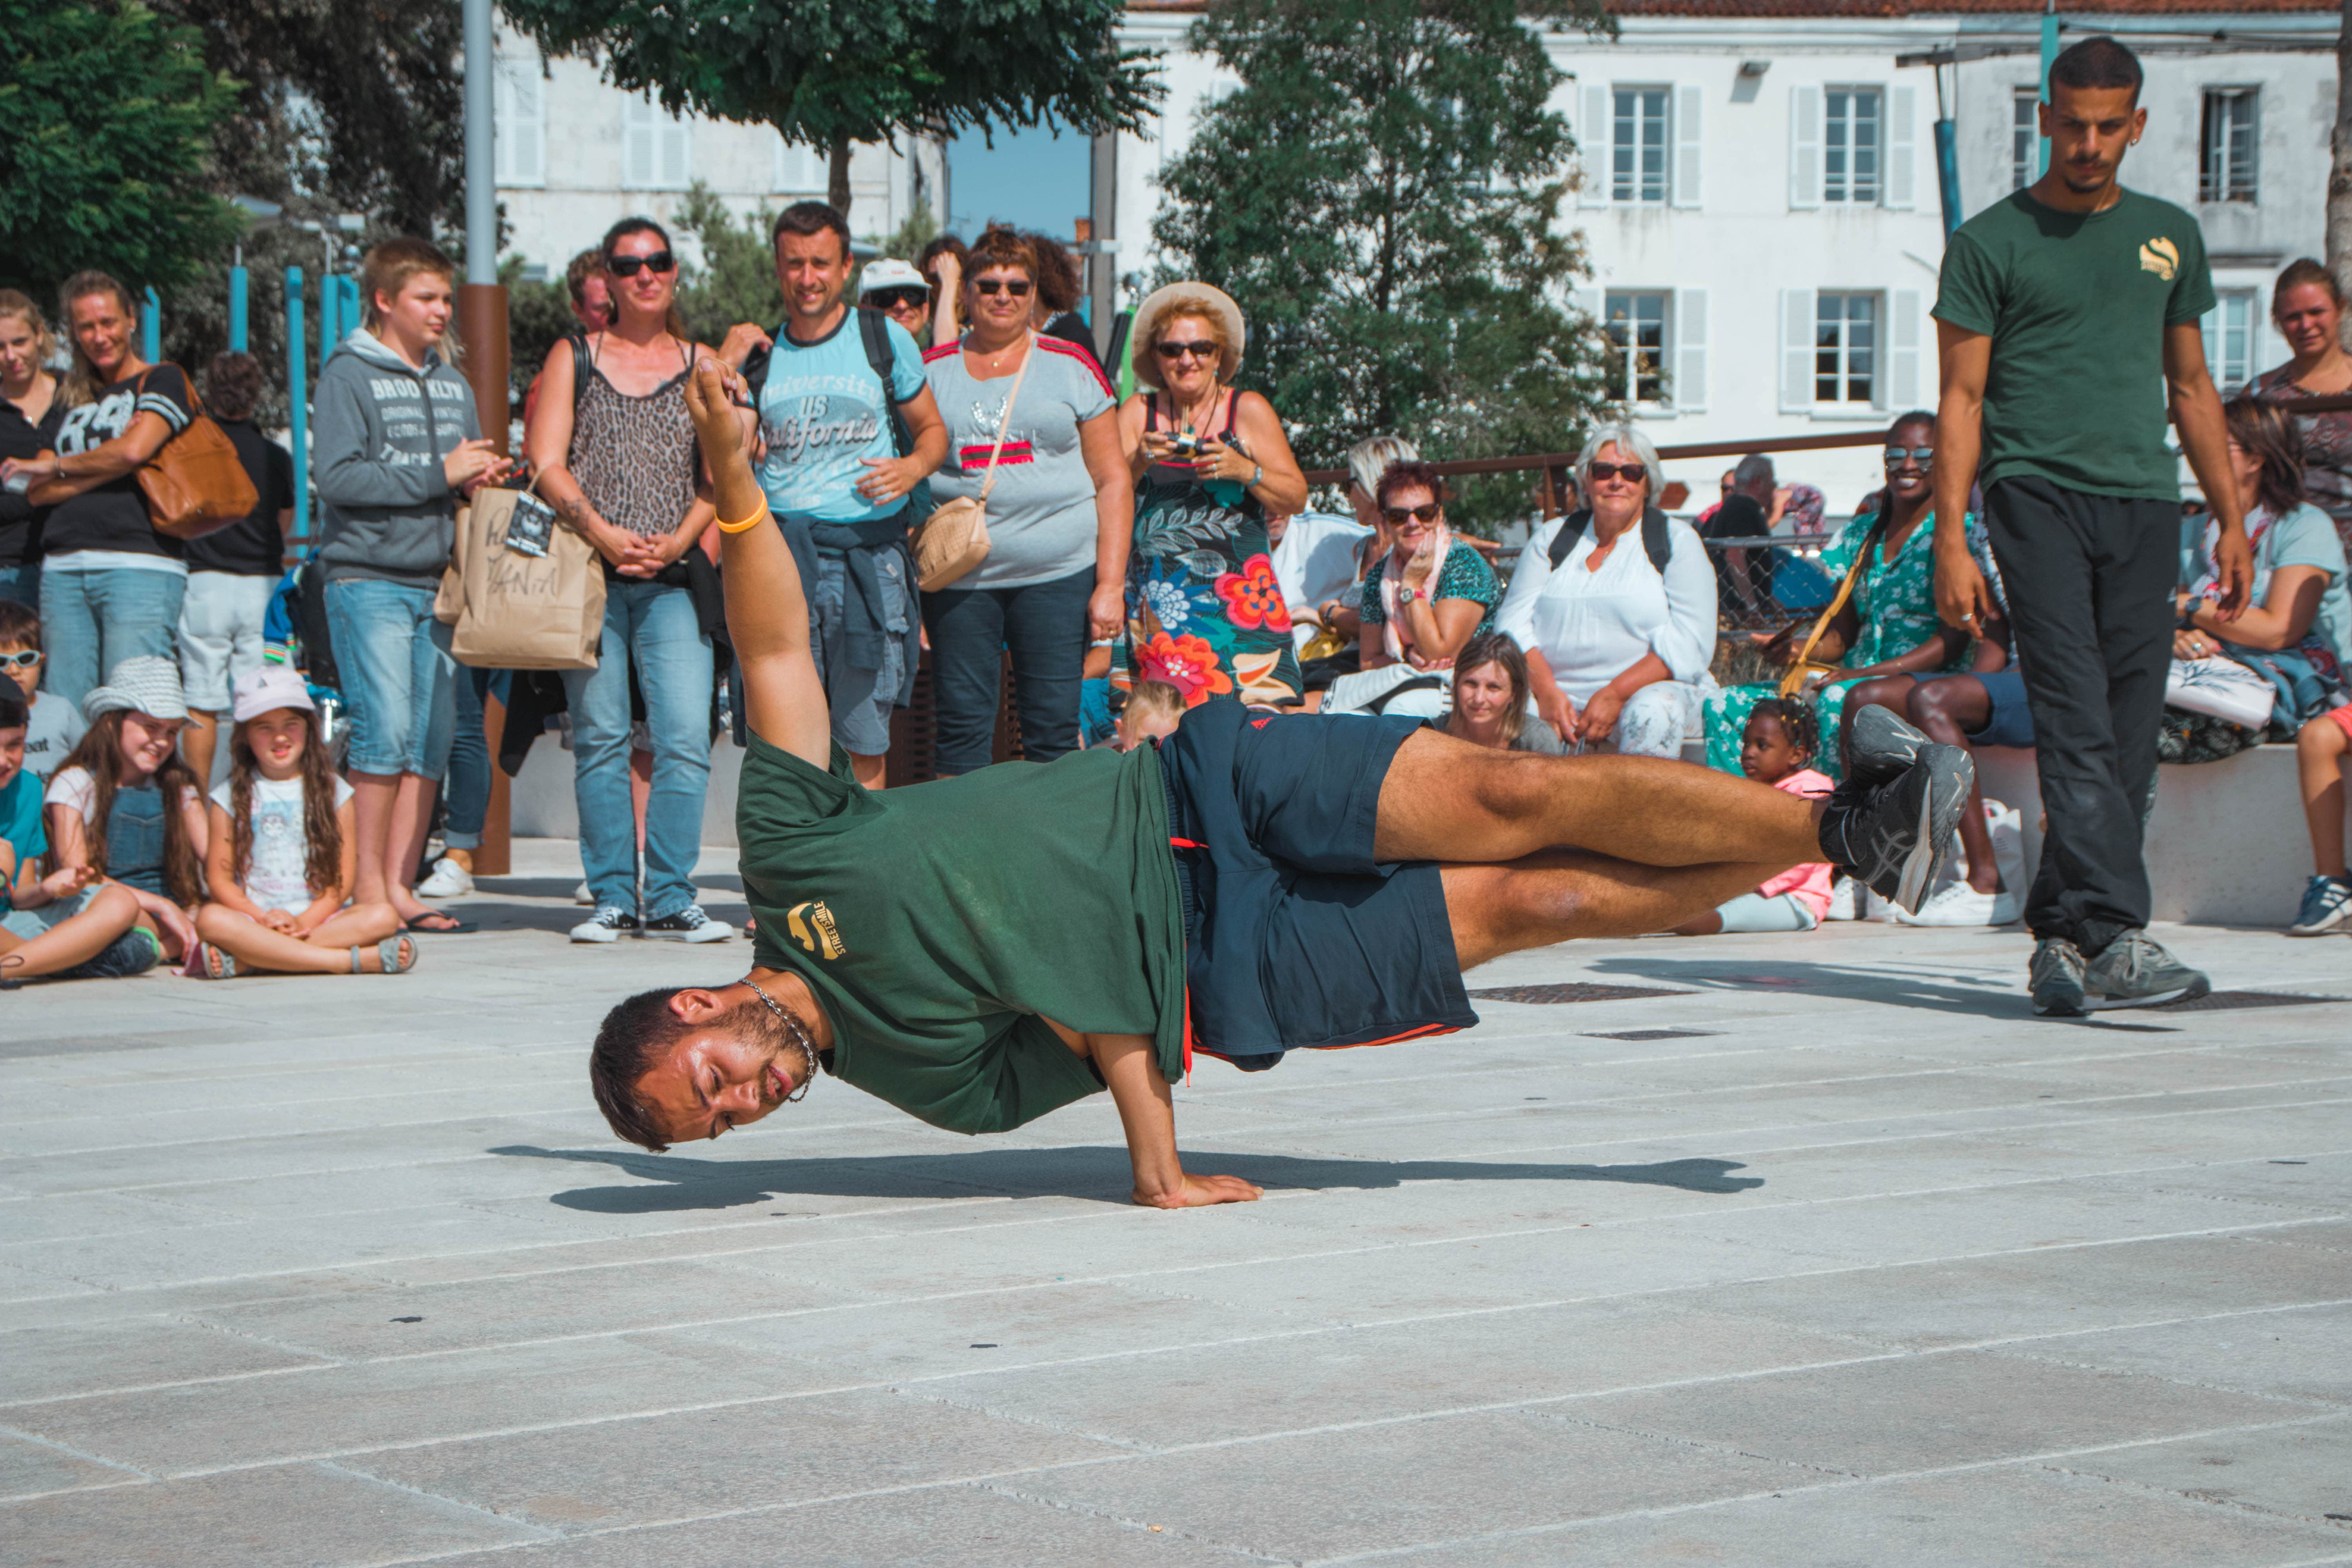 reserver spectacle breakdance hiphop family day streetsmile